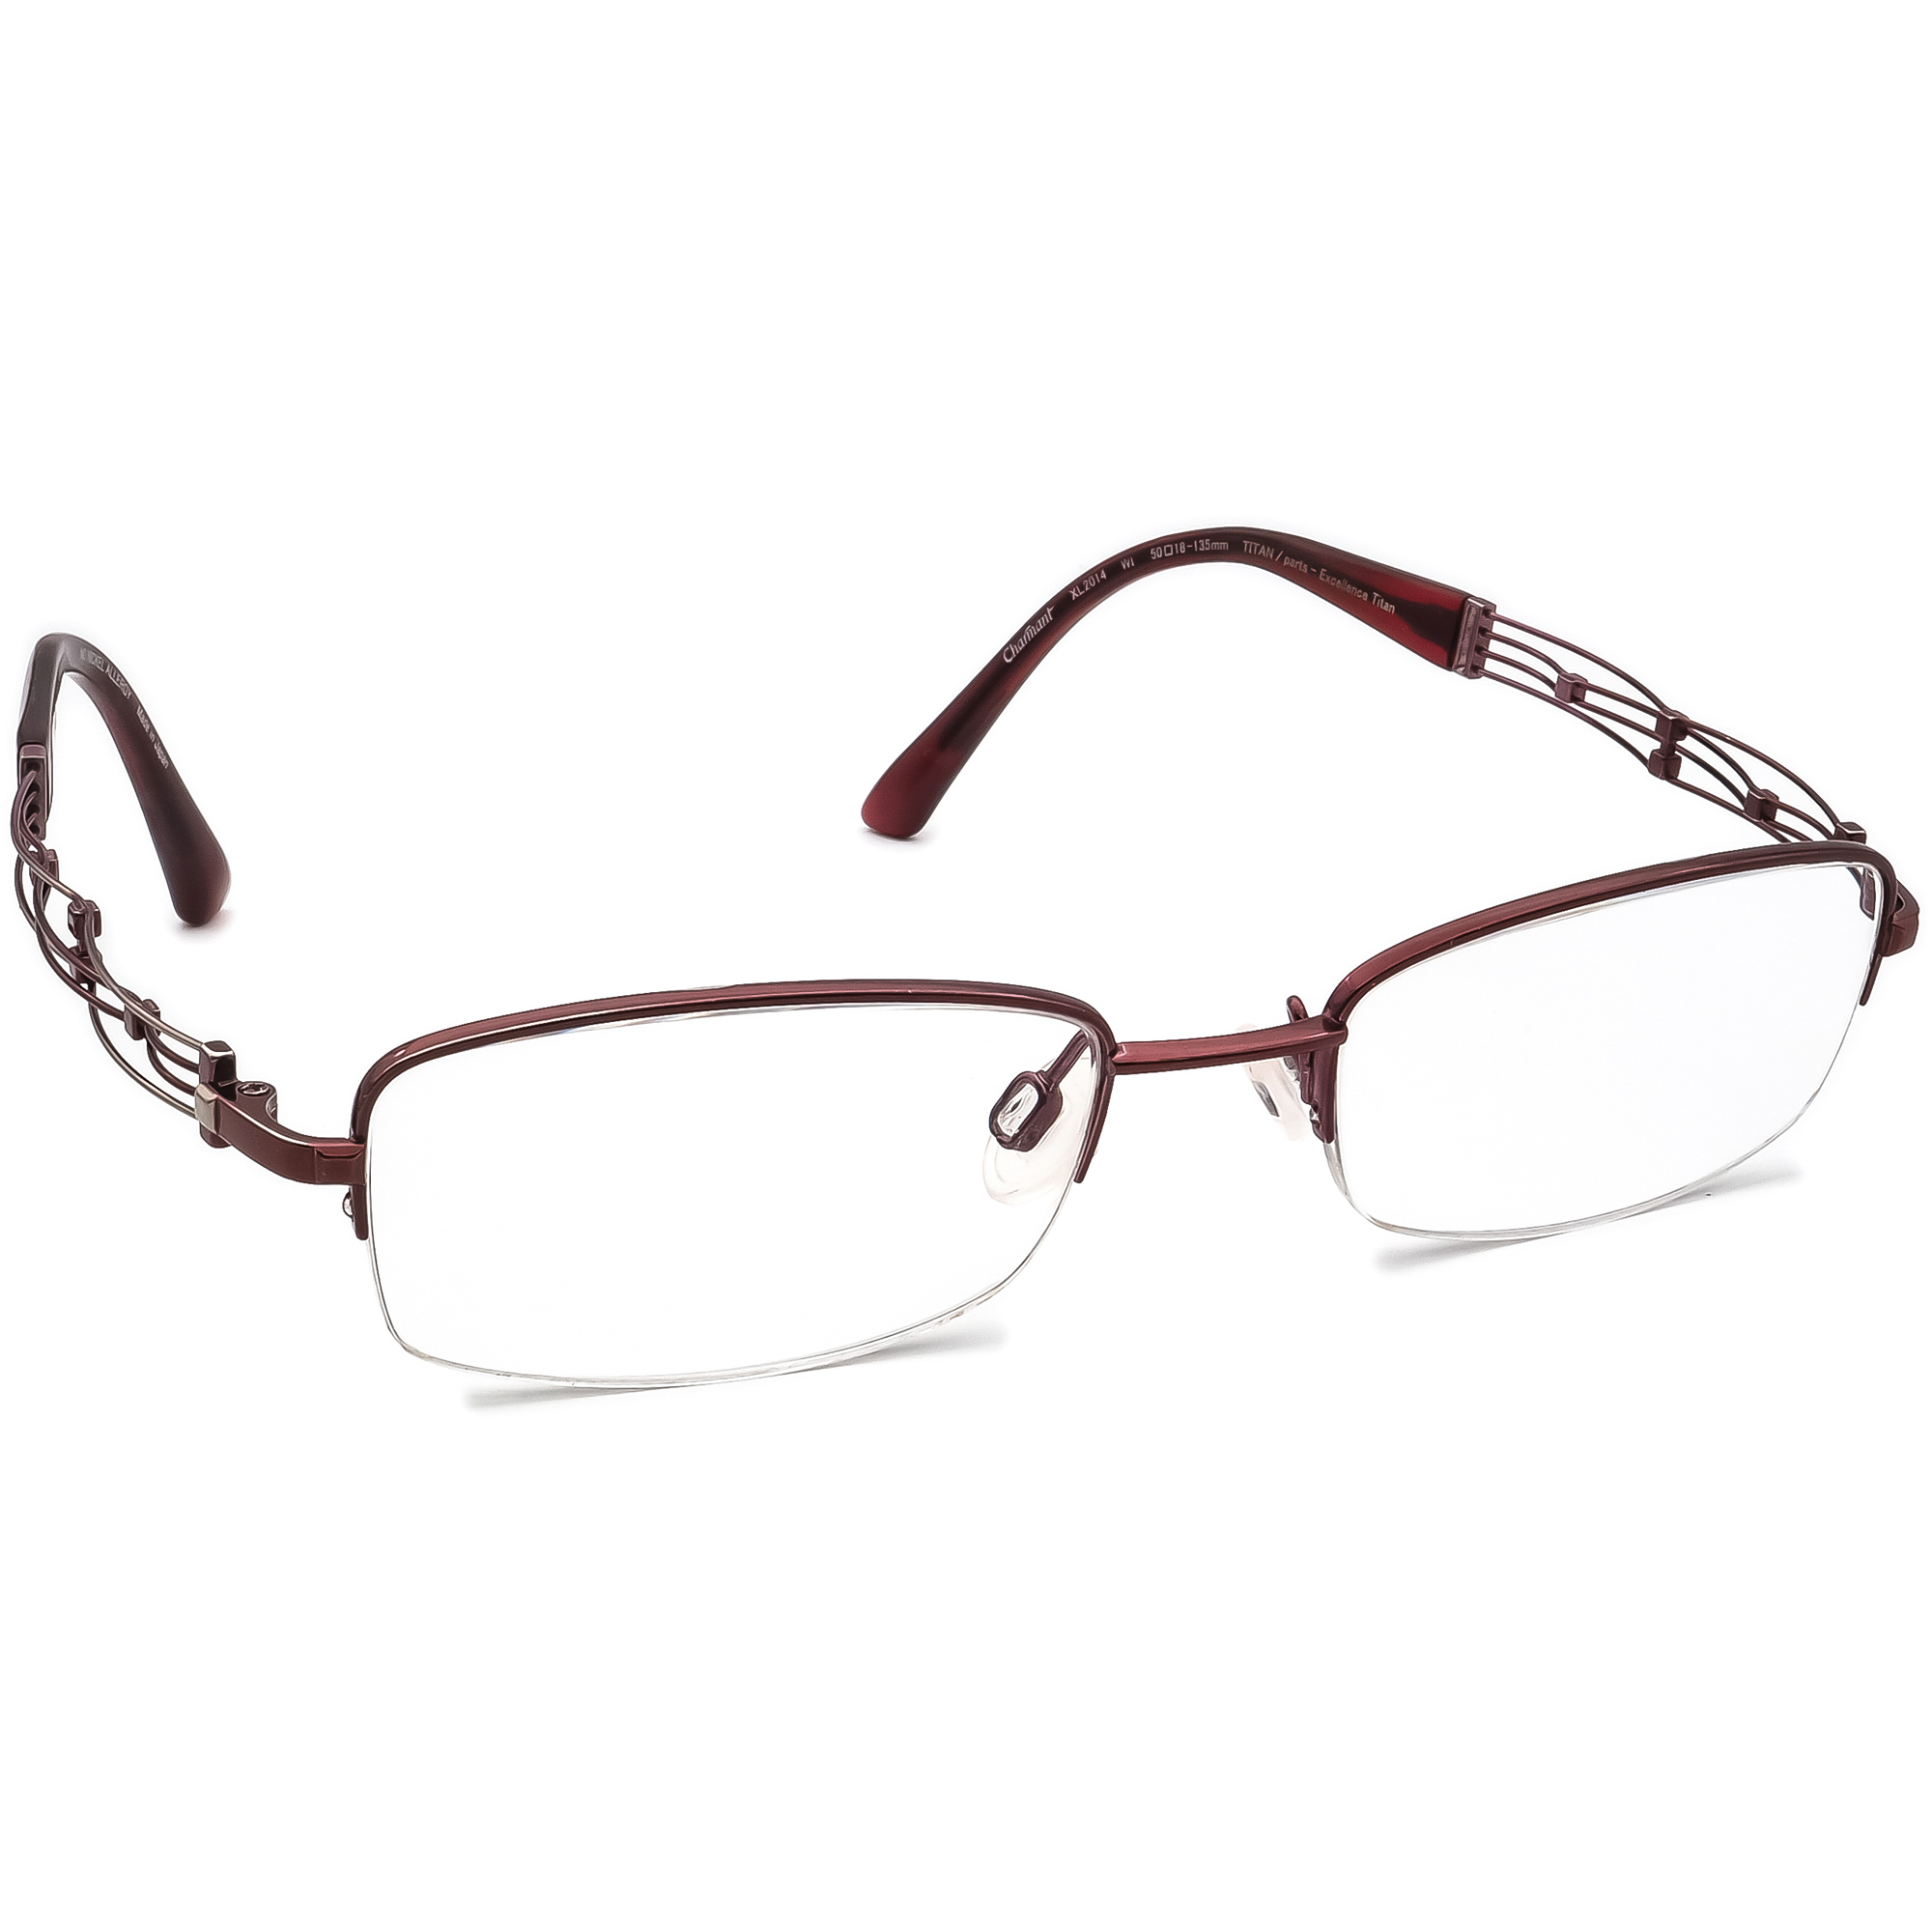 Charmant XL 2014 WI Line Art Titanium Eyeglasses